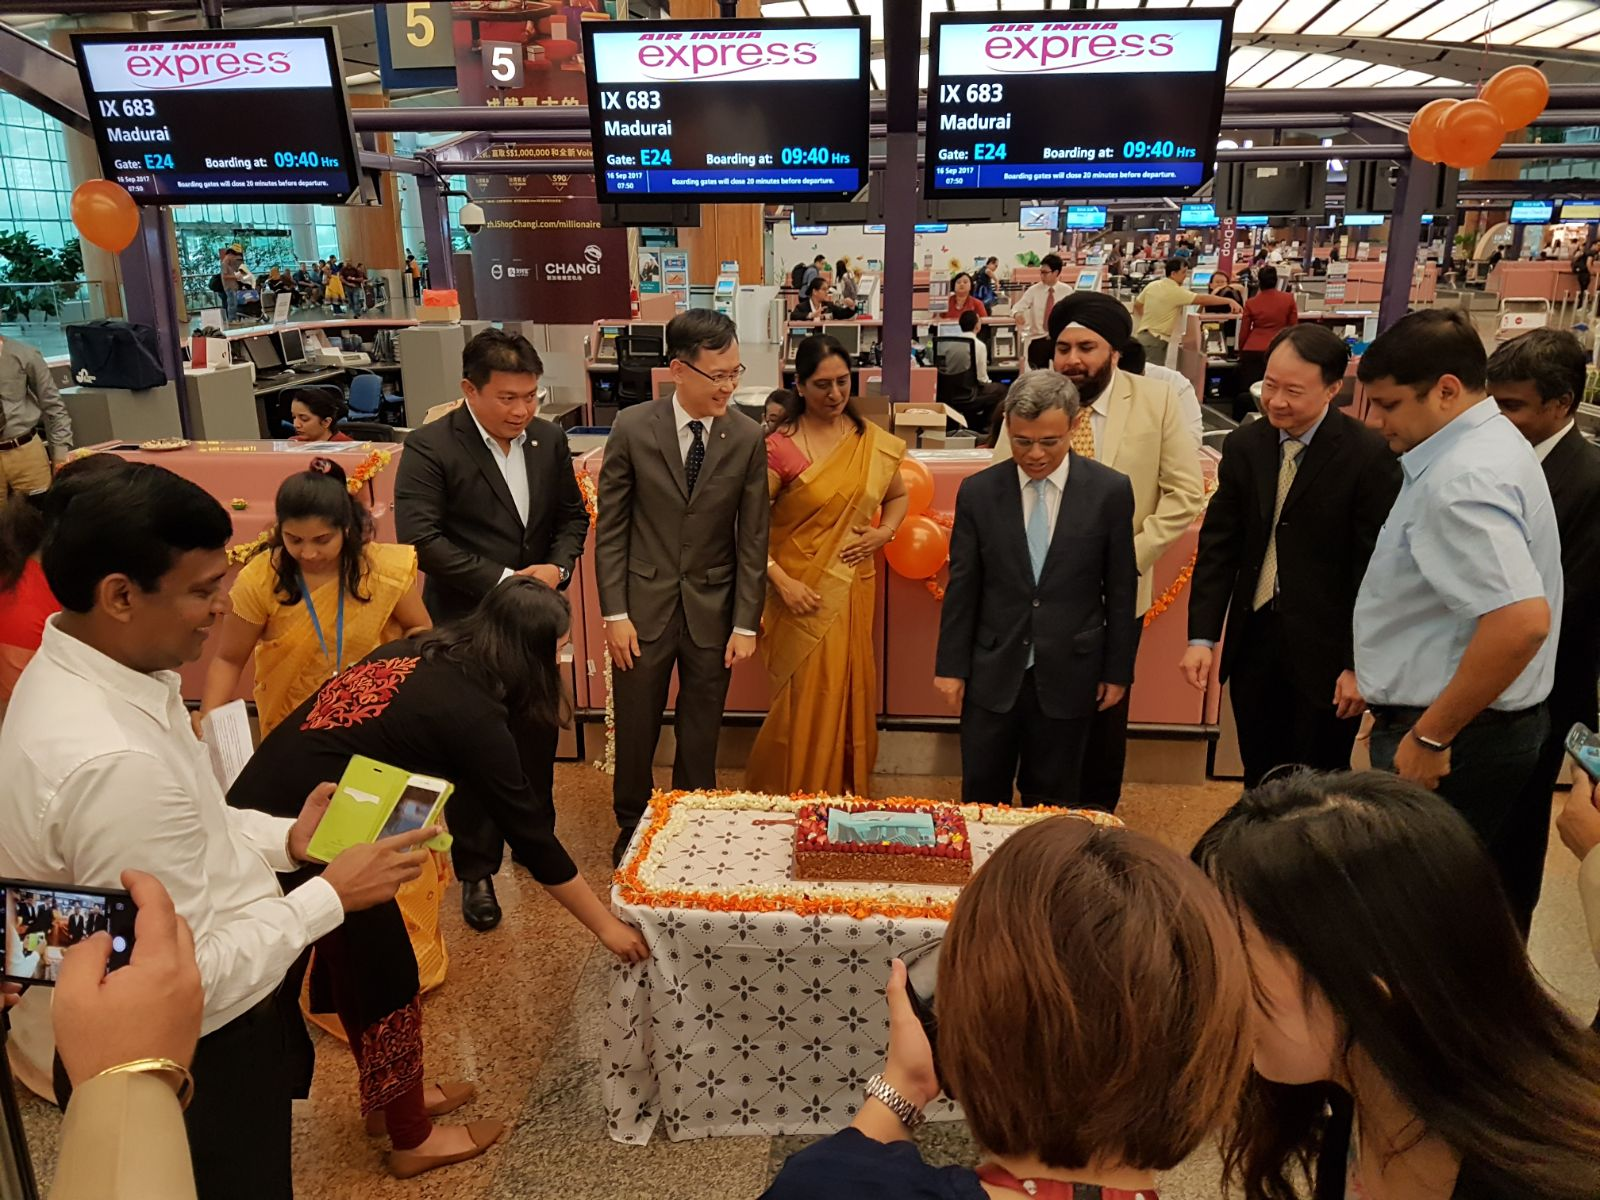 H.E. Jawed Ashraf, High Commissioner of India to Singapore  inaugurating Singapore-Madurai flight of Air India Express at Changi Airport Terminal 2.